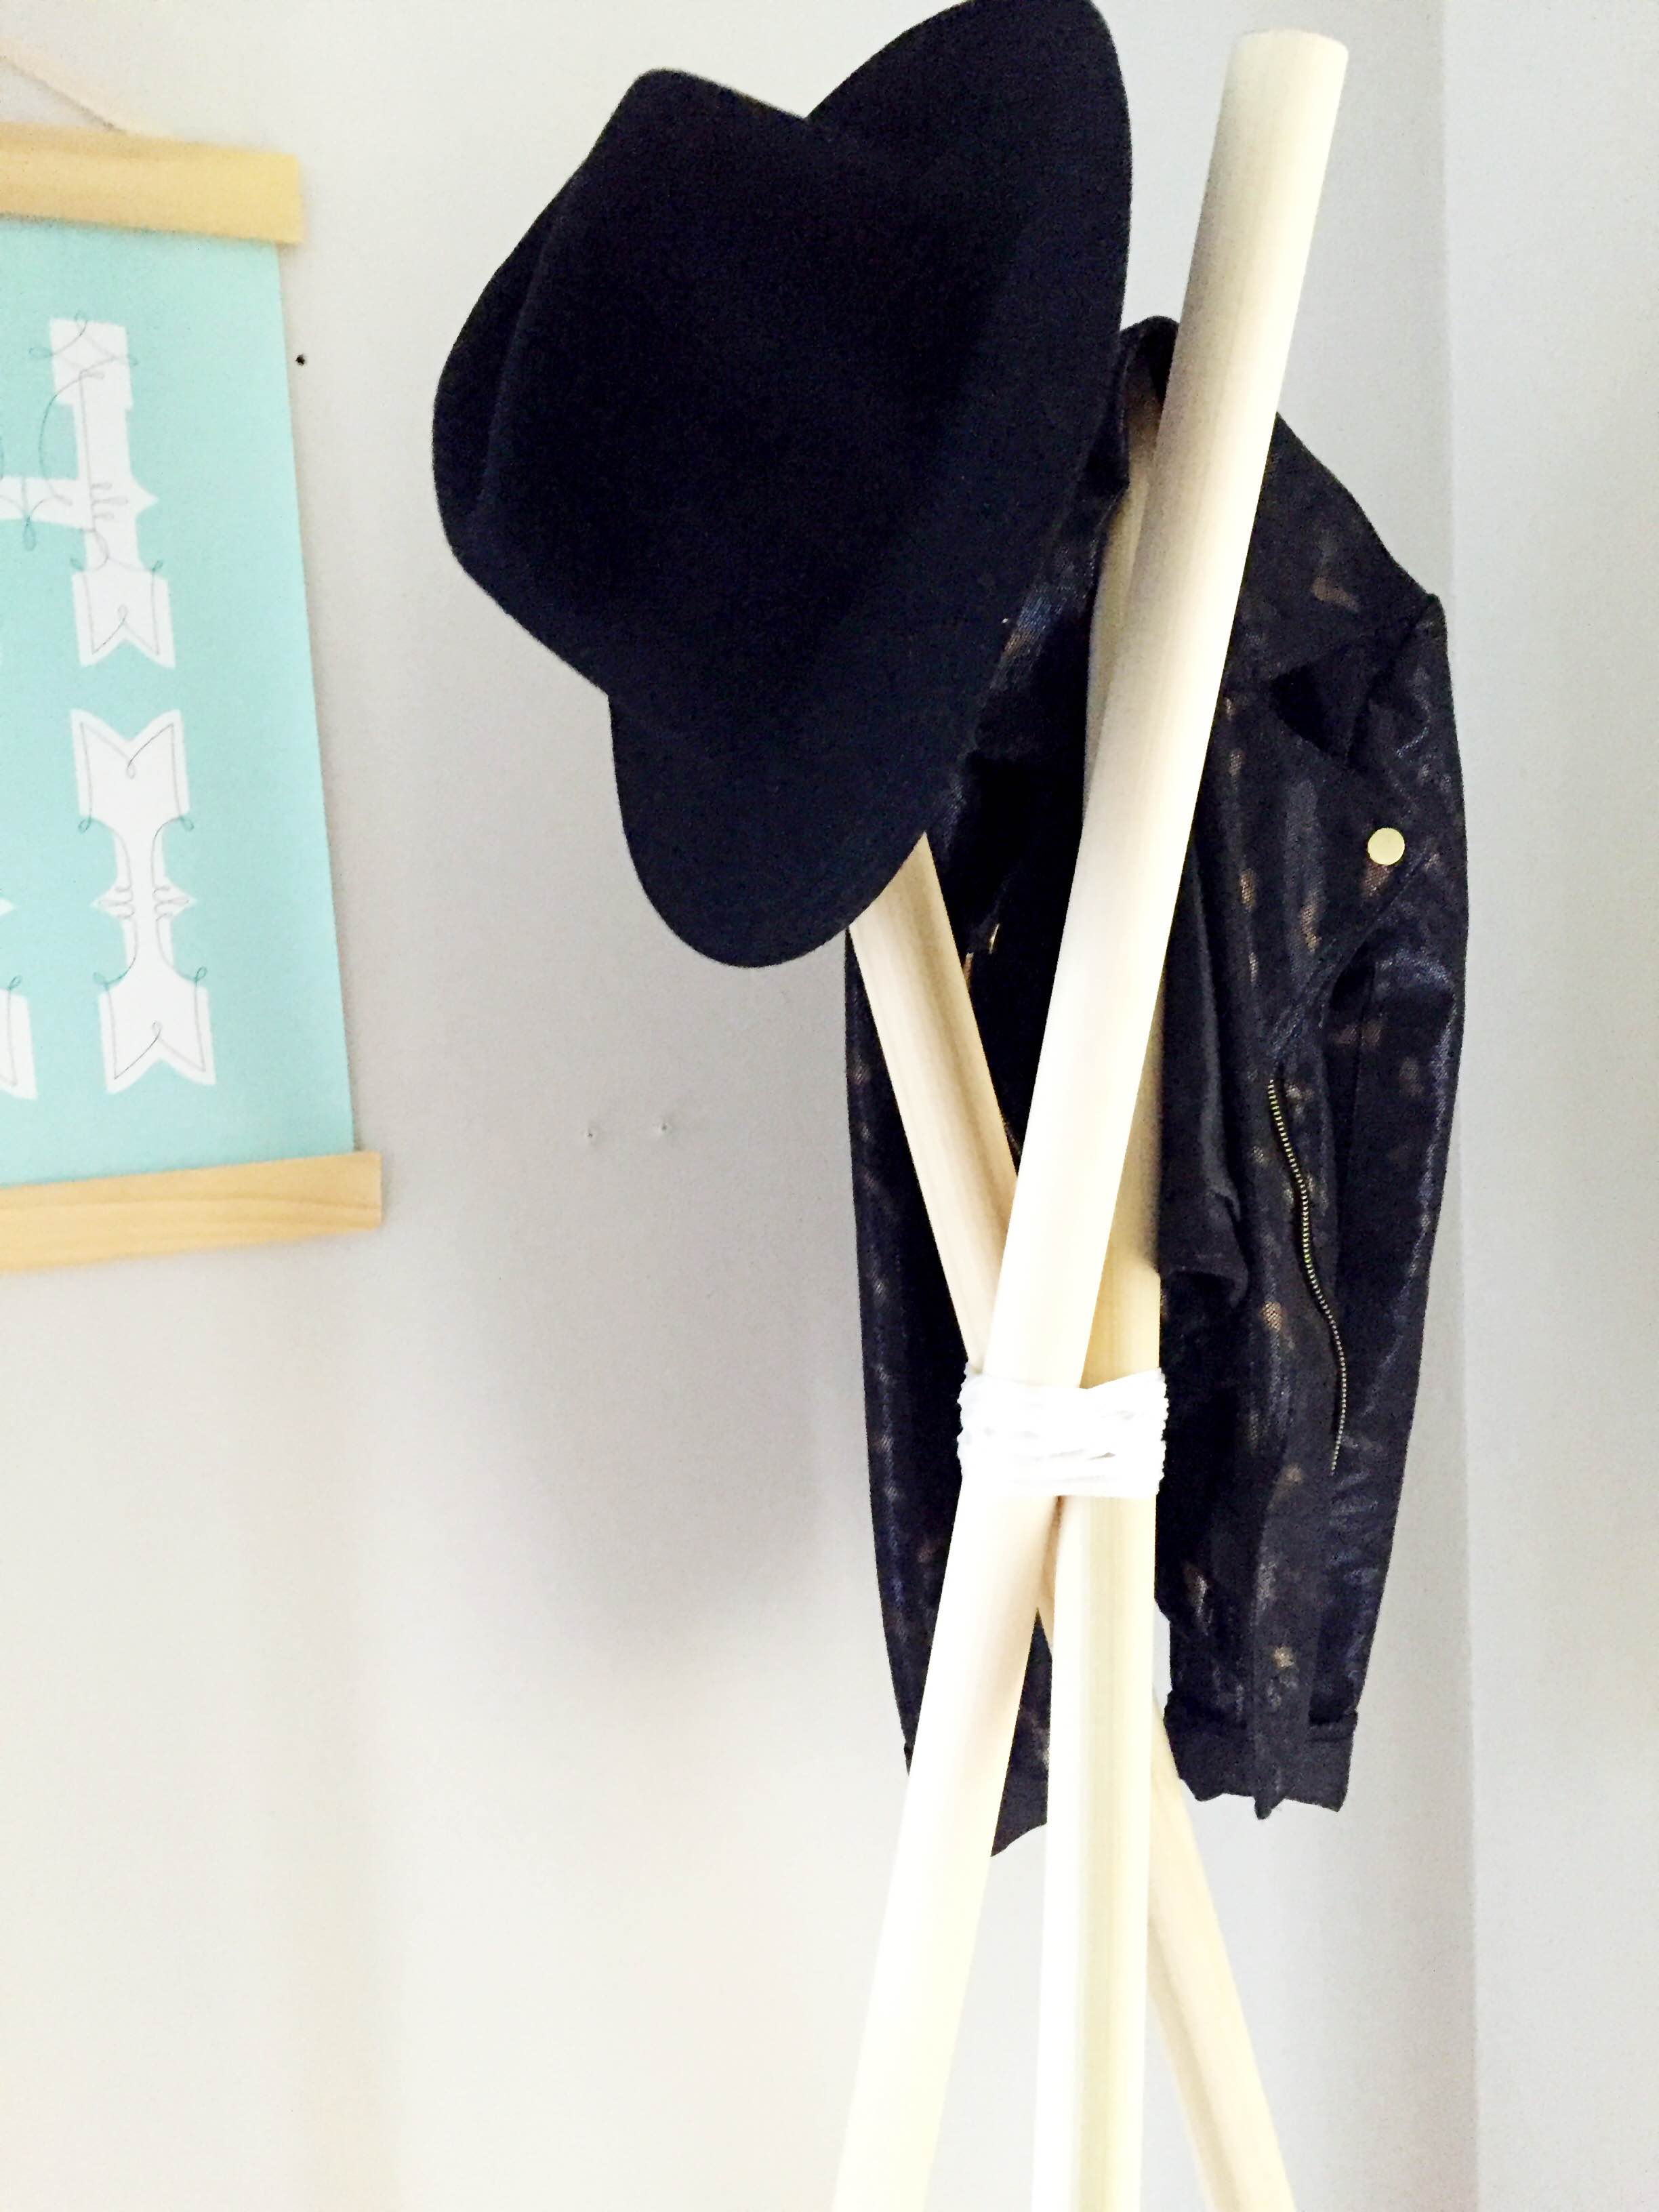 DIY Wooden Coat Rack